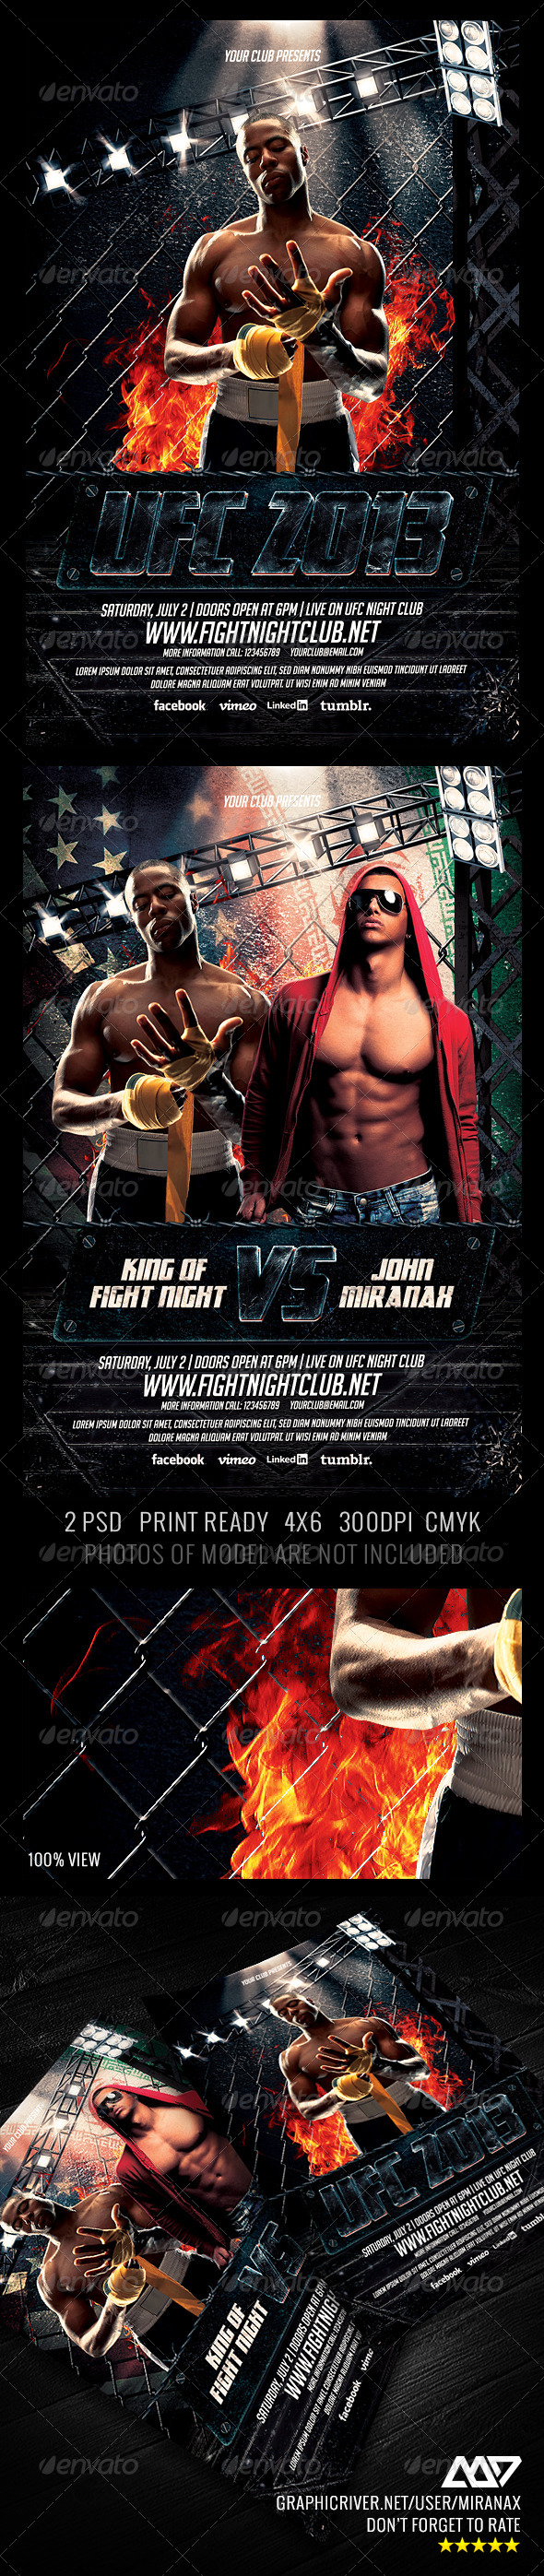 GraphicRiver MMA UFC Showdown Flyer Template 4387811